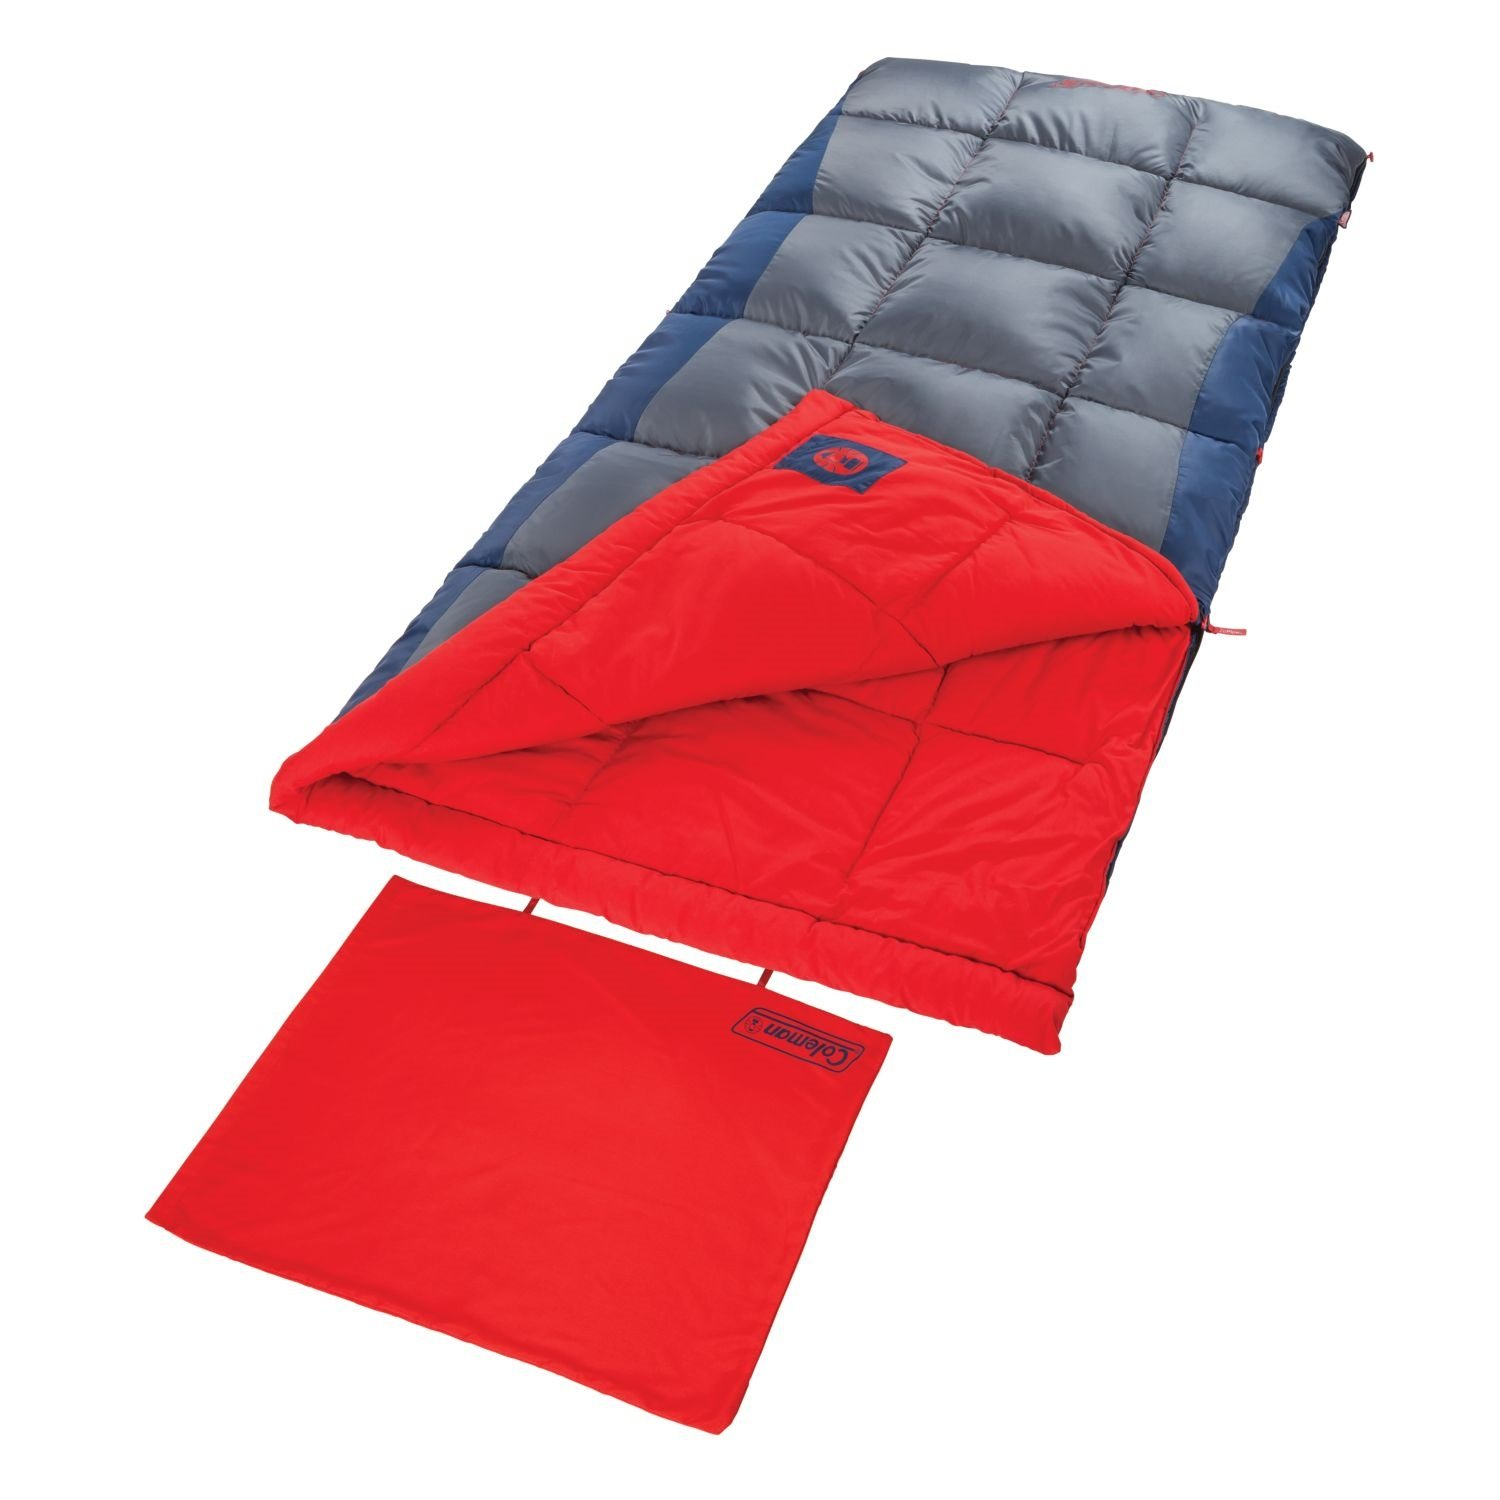 An image related to Coleman Heaton Peak 2000018510 Men's 50 Degree Sleeping Bag